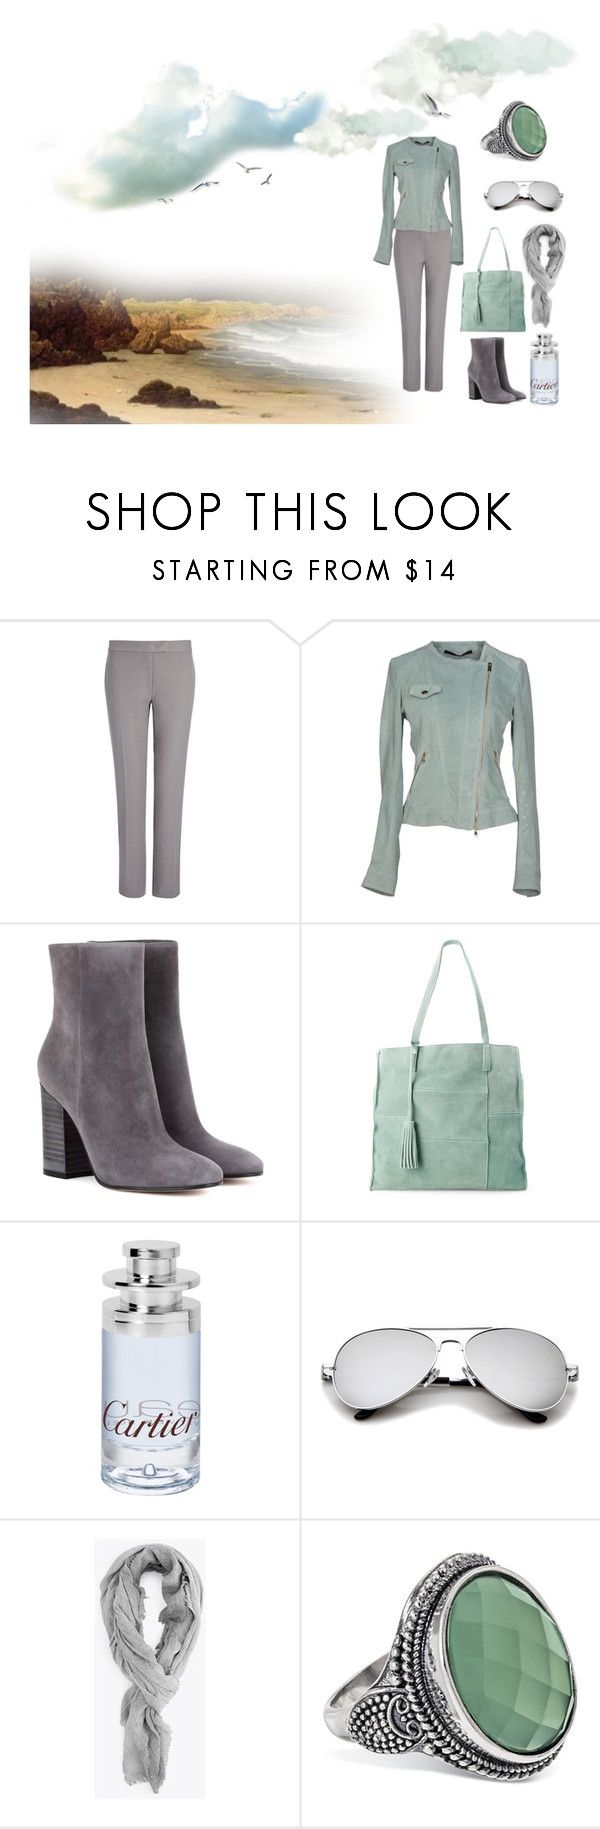 """""""TRADE WINDS"""" by suninvirgo ❤ liked on Polyvore featuring Joseph, Annarita N., Gianvito Rossi, Moda Luxe, Cartier, mint and gray"""